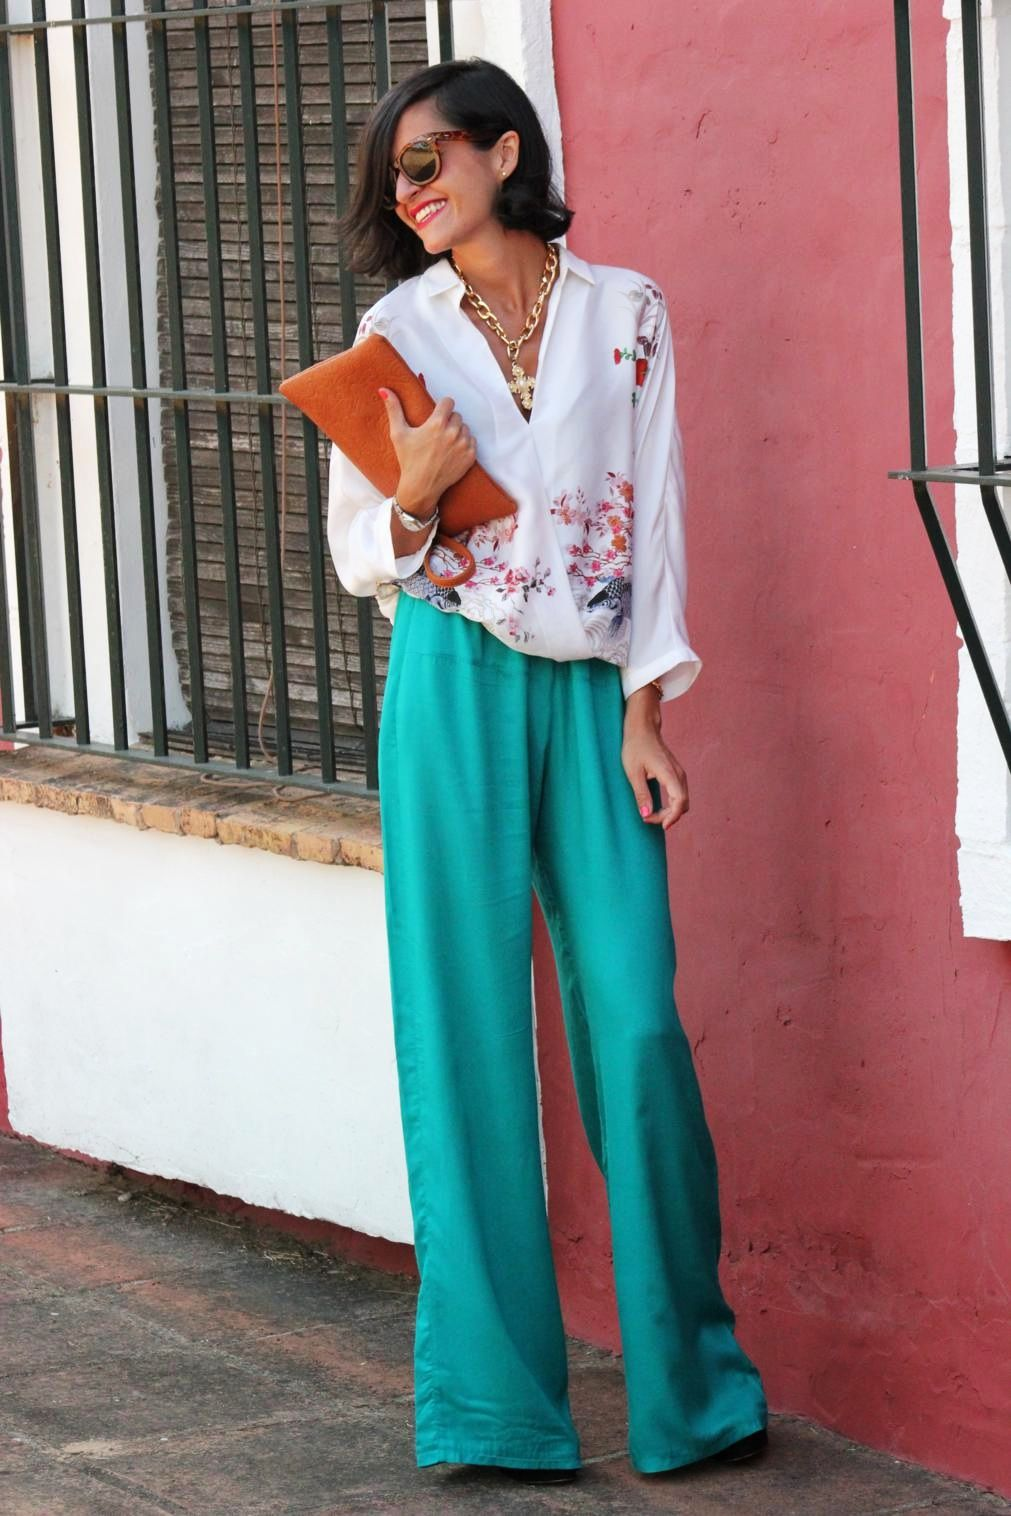 Green Palazzo pants and white top. get the look with SR fashion ...